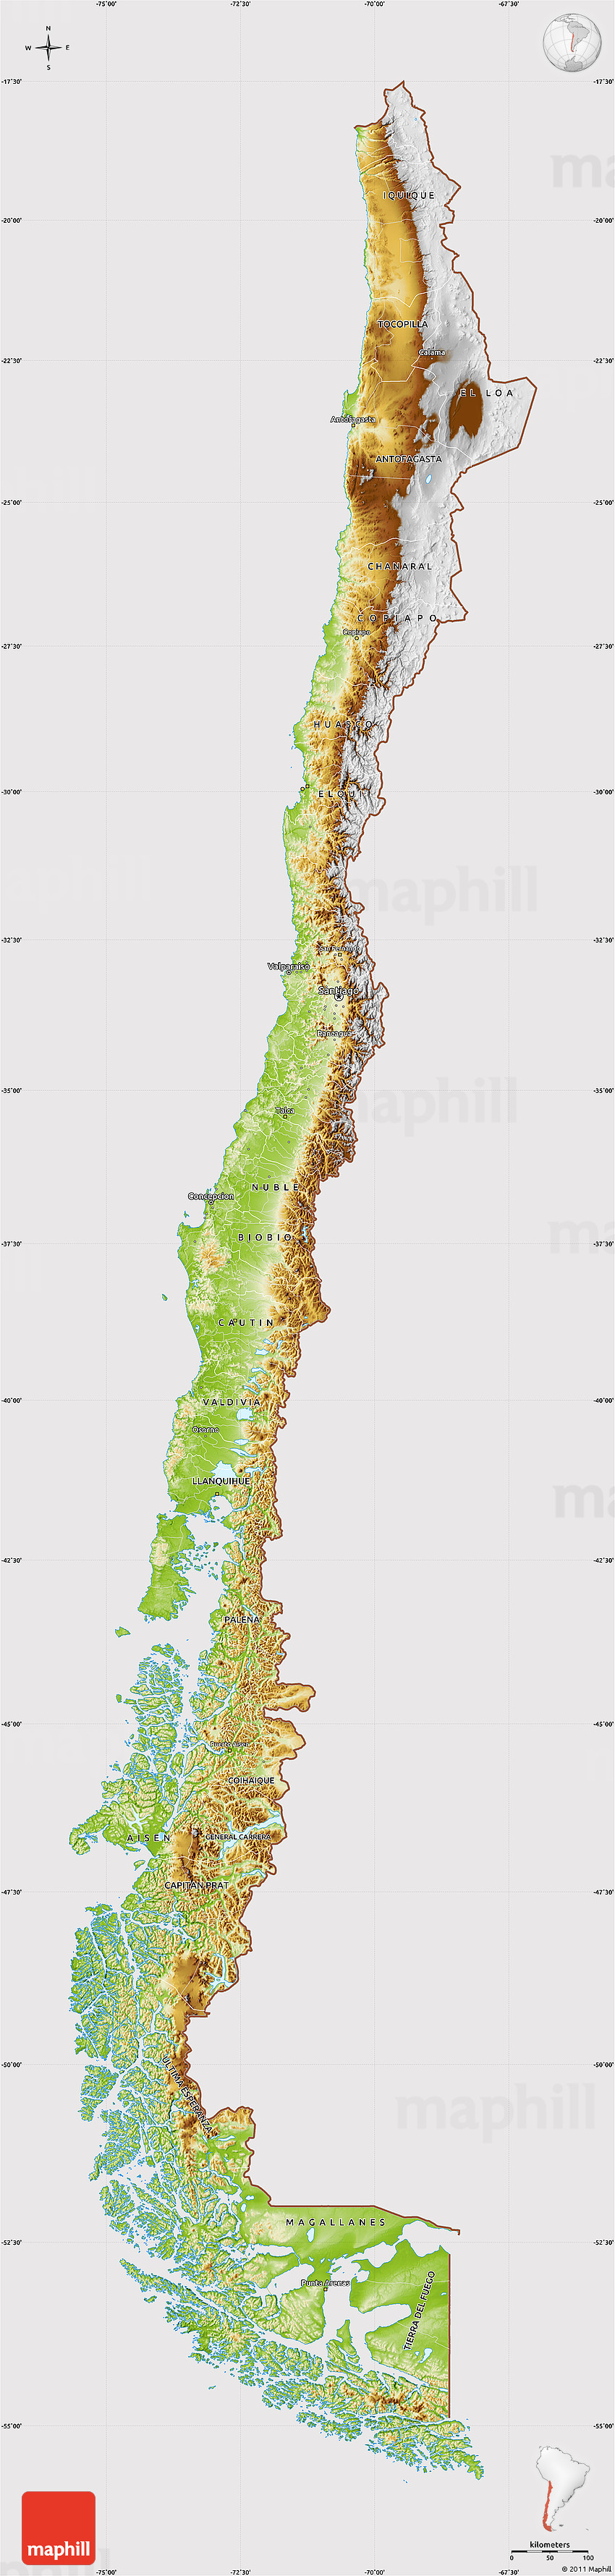 Physical Map of Chile cropped outside